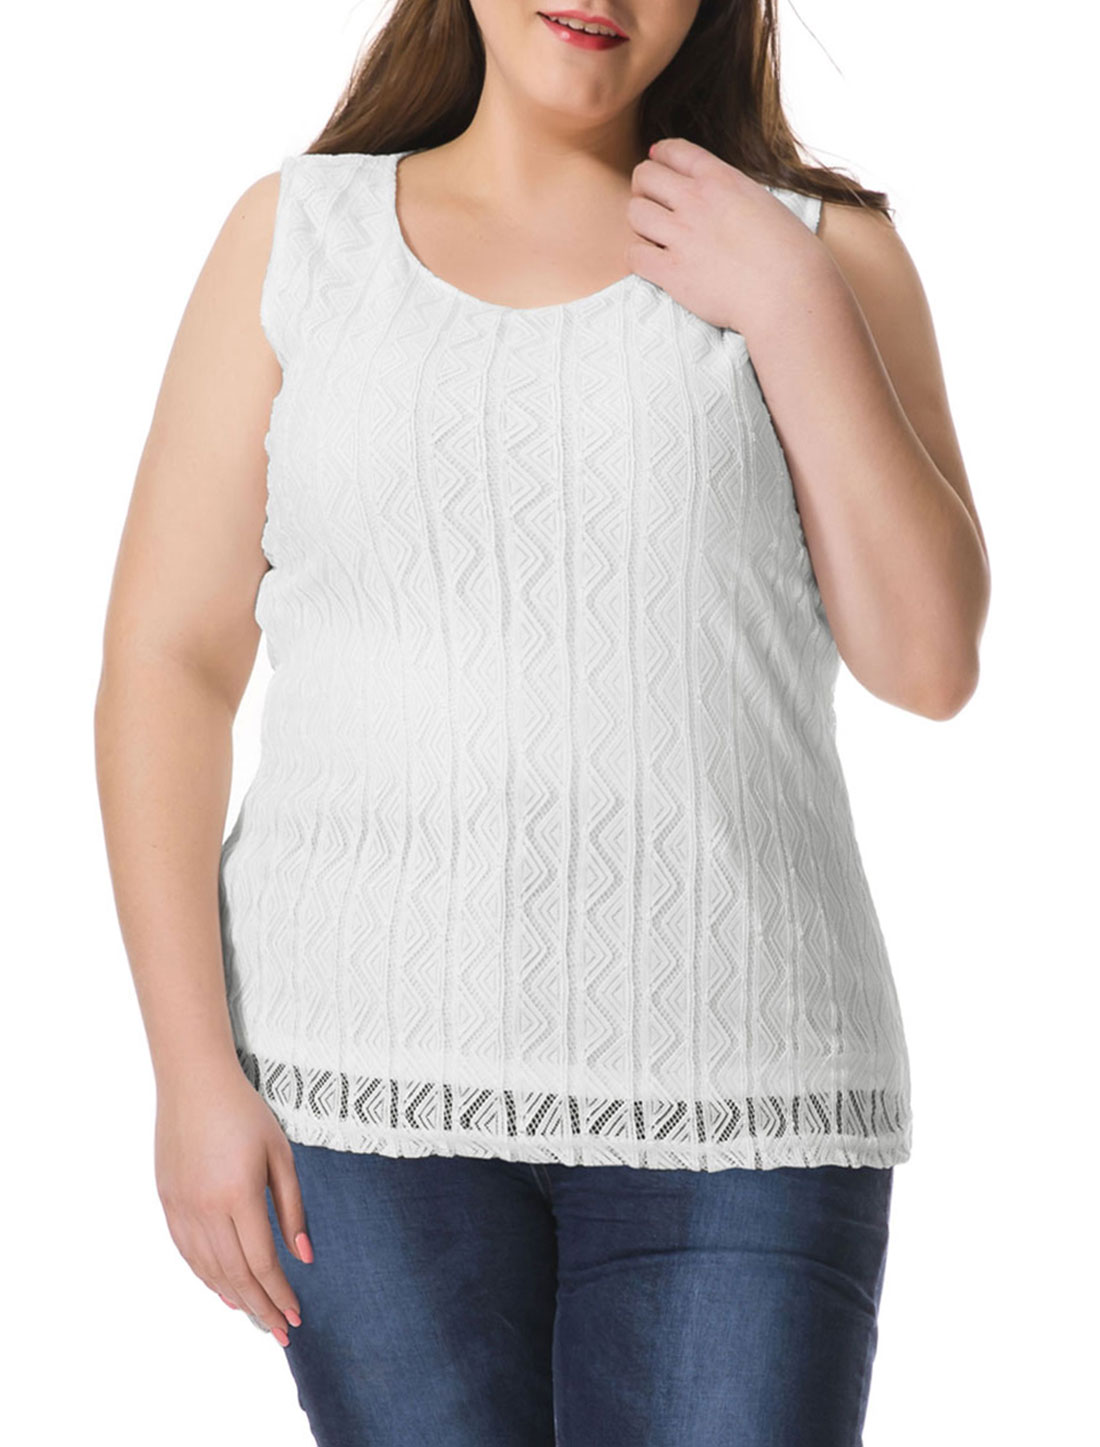 Unique Bargains Women's Plus Size Hollow Triangle Sleeveless Blouse White (Size 3X)